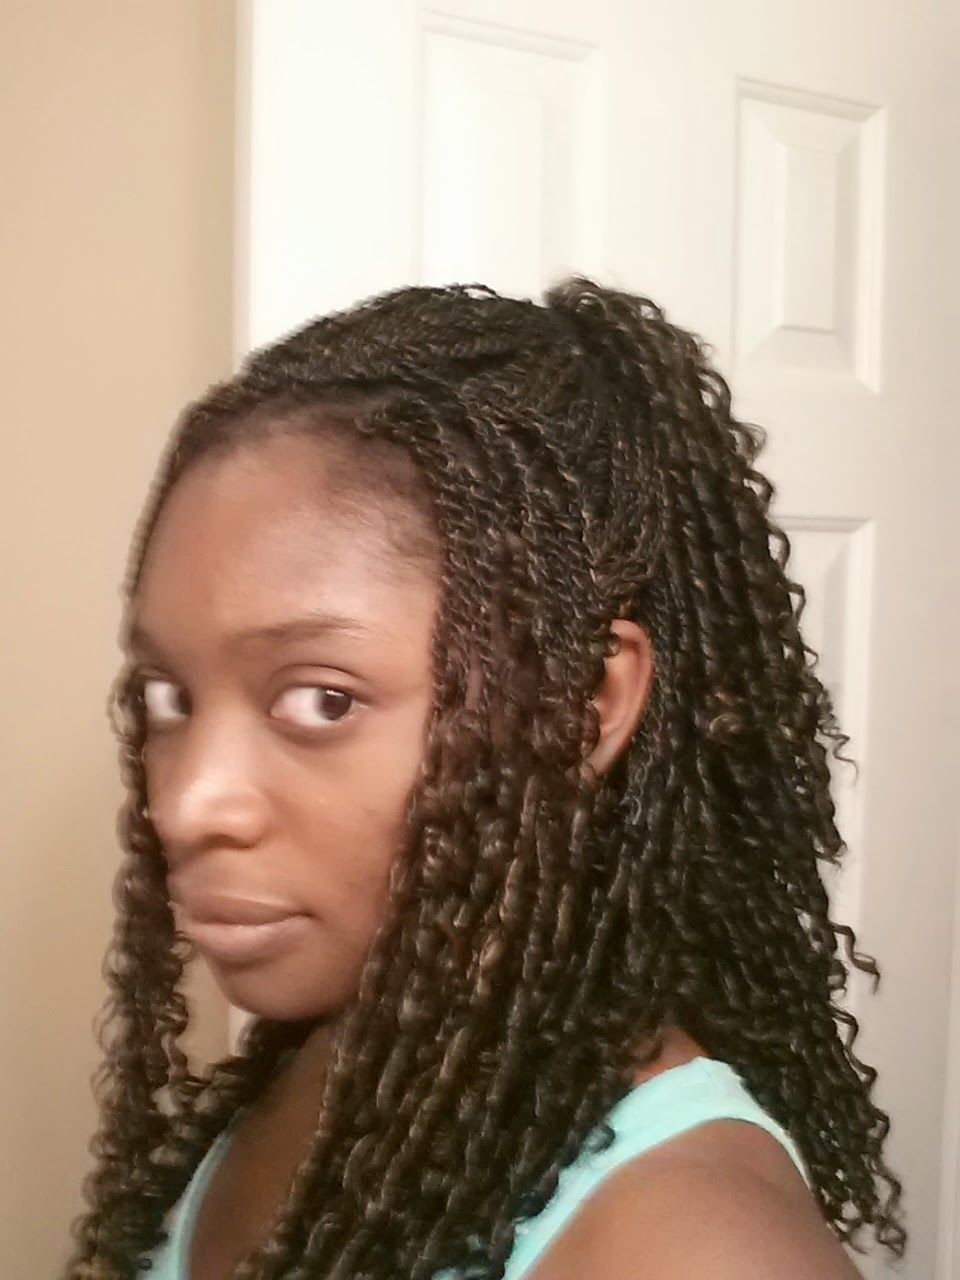 Crochet Pre Braided Hair with Braids